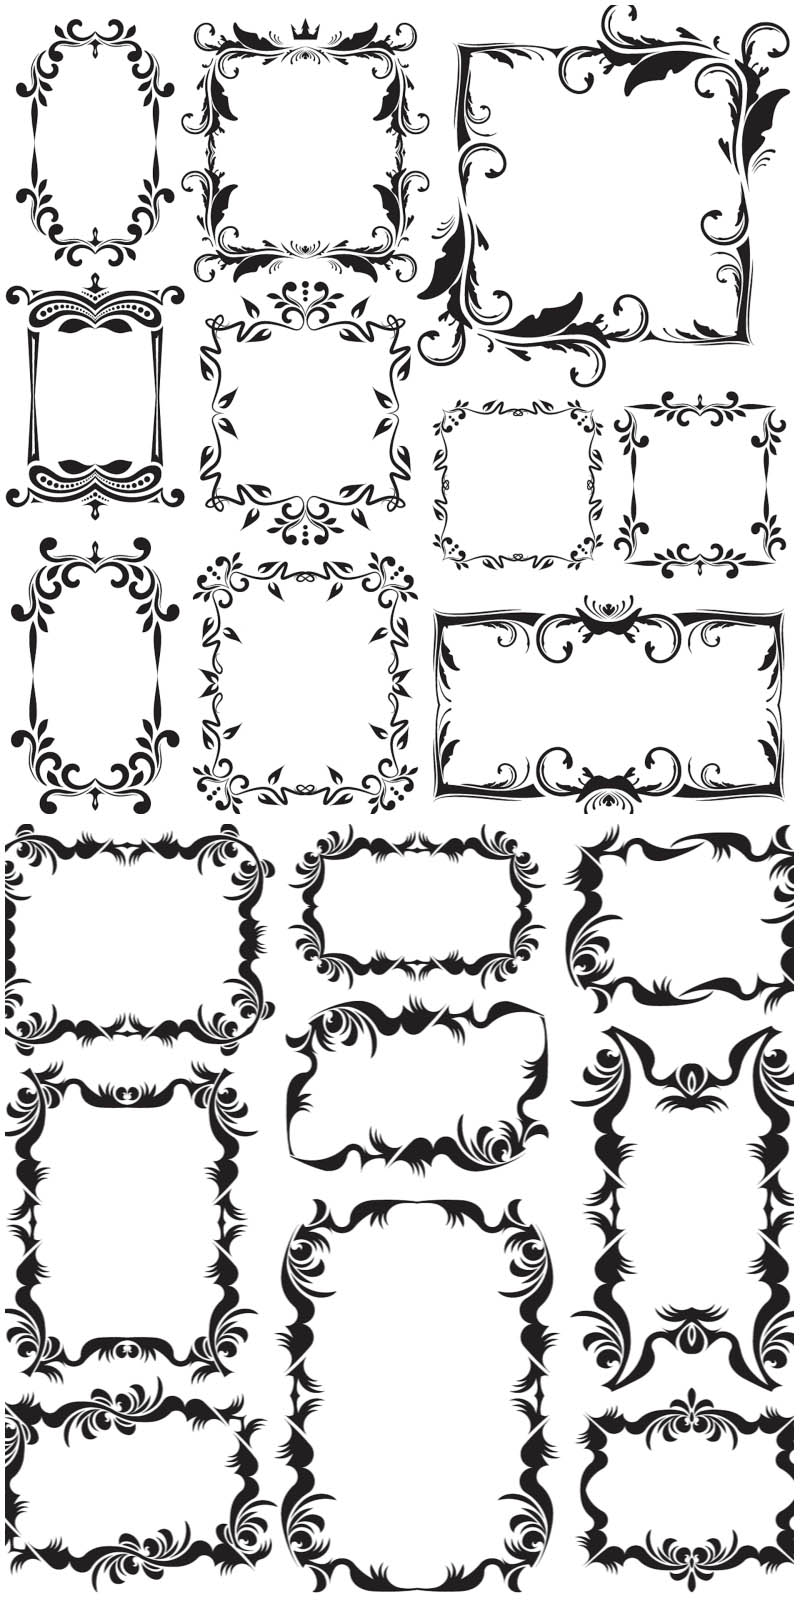 8 Free Ornate Vintage Frame Vector Images